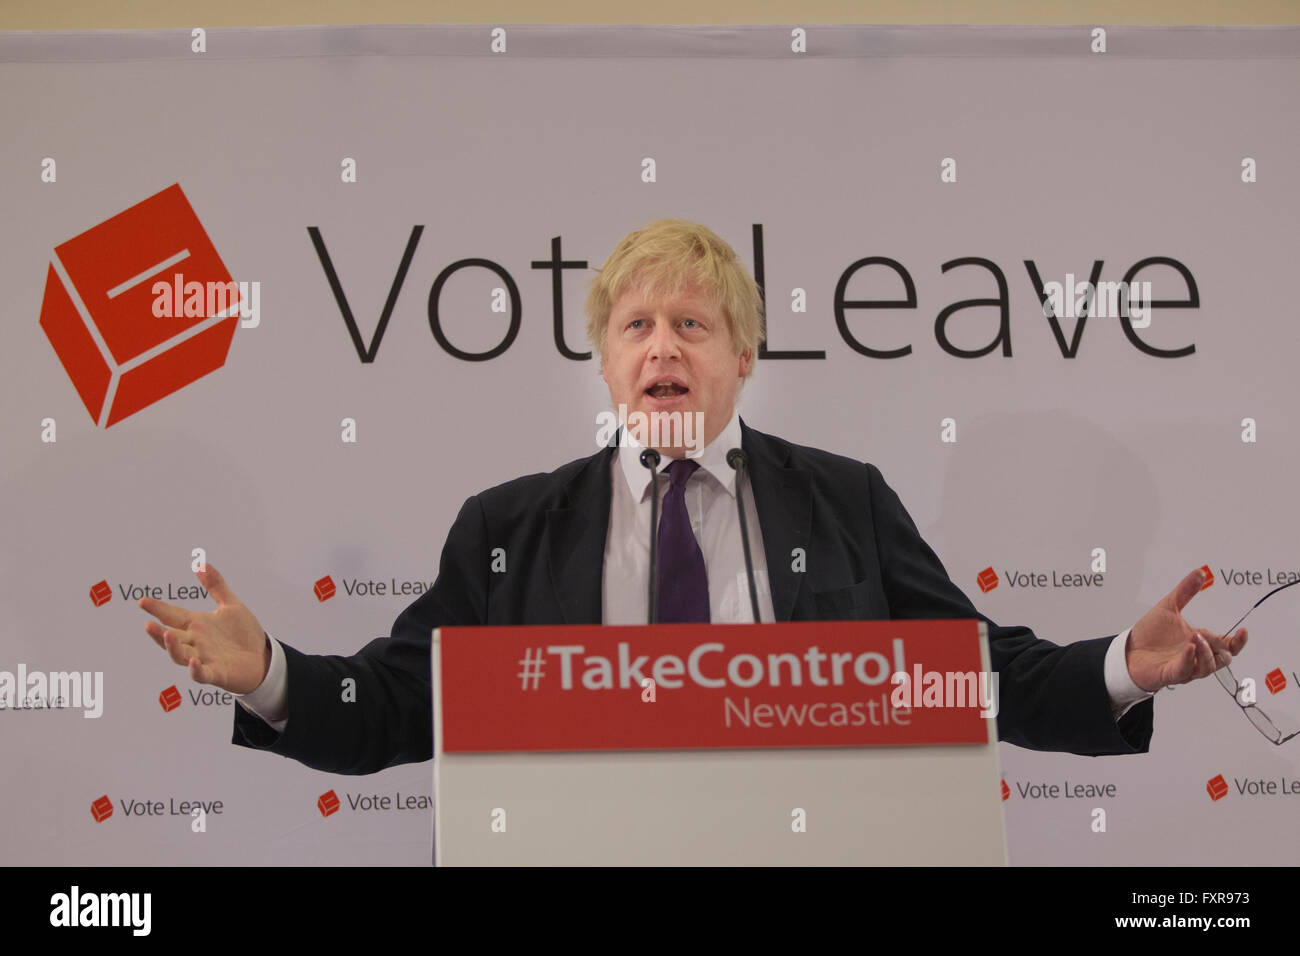 Brexit 'VOTE LEAVE' rally held by Boris Johnson MP campaigning to leave the Euro on June 23rd referendum, - Stock Image